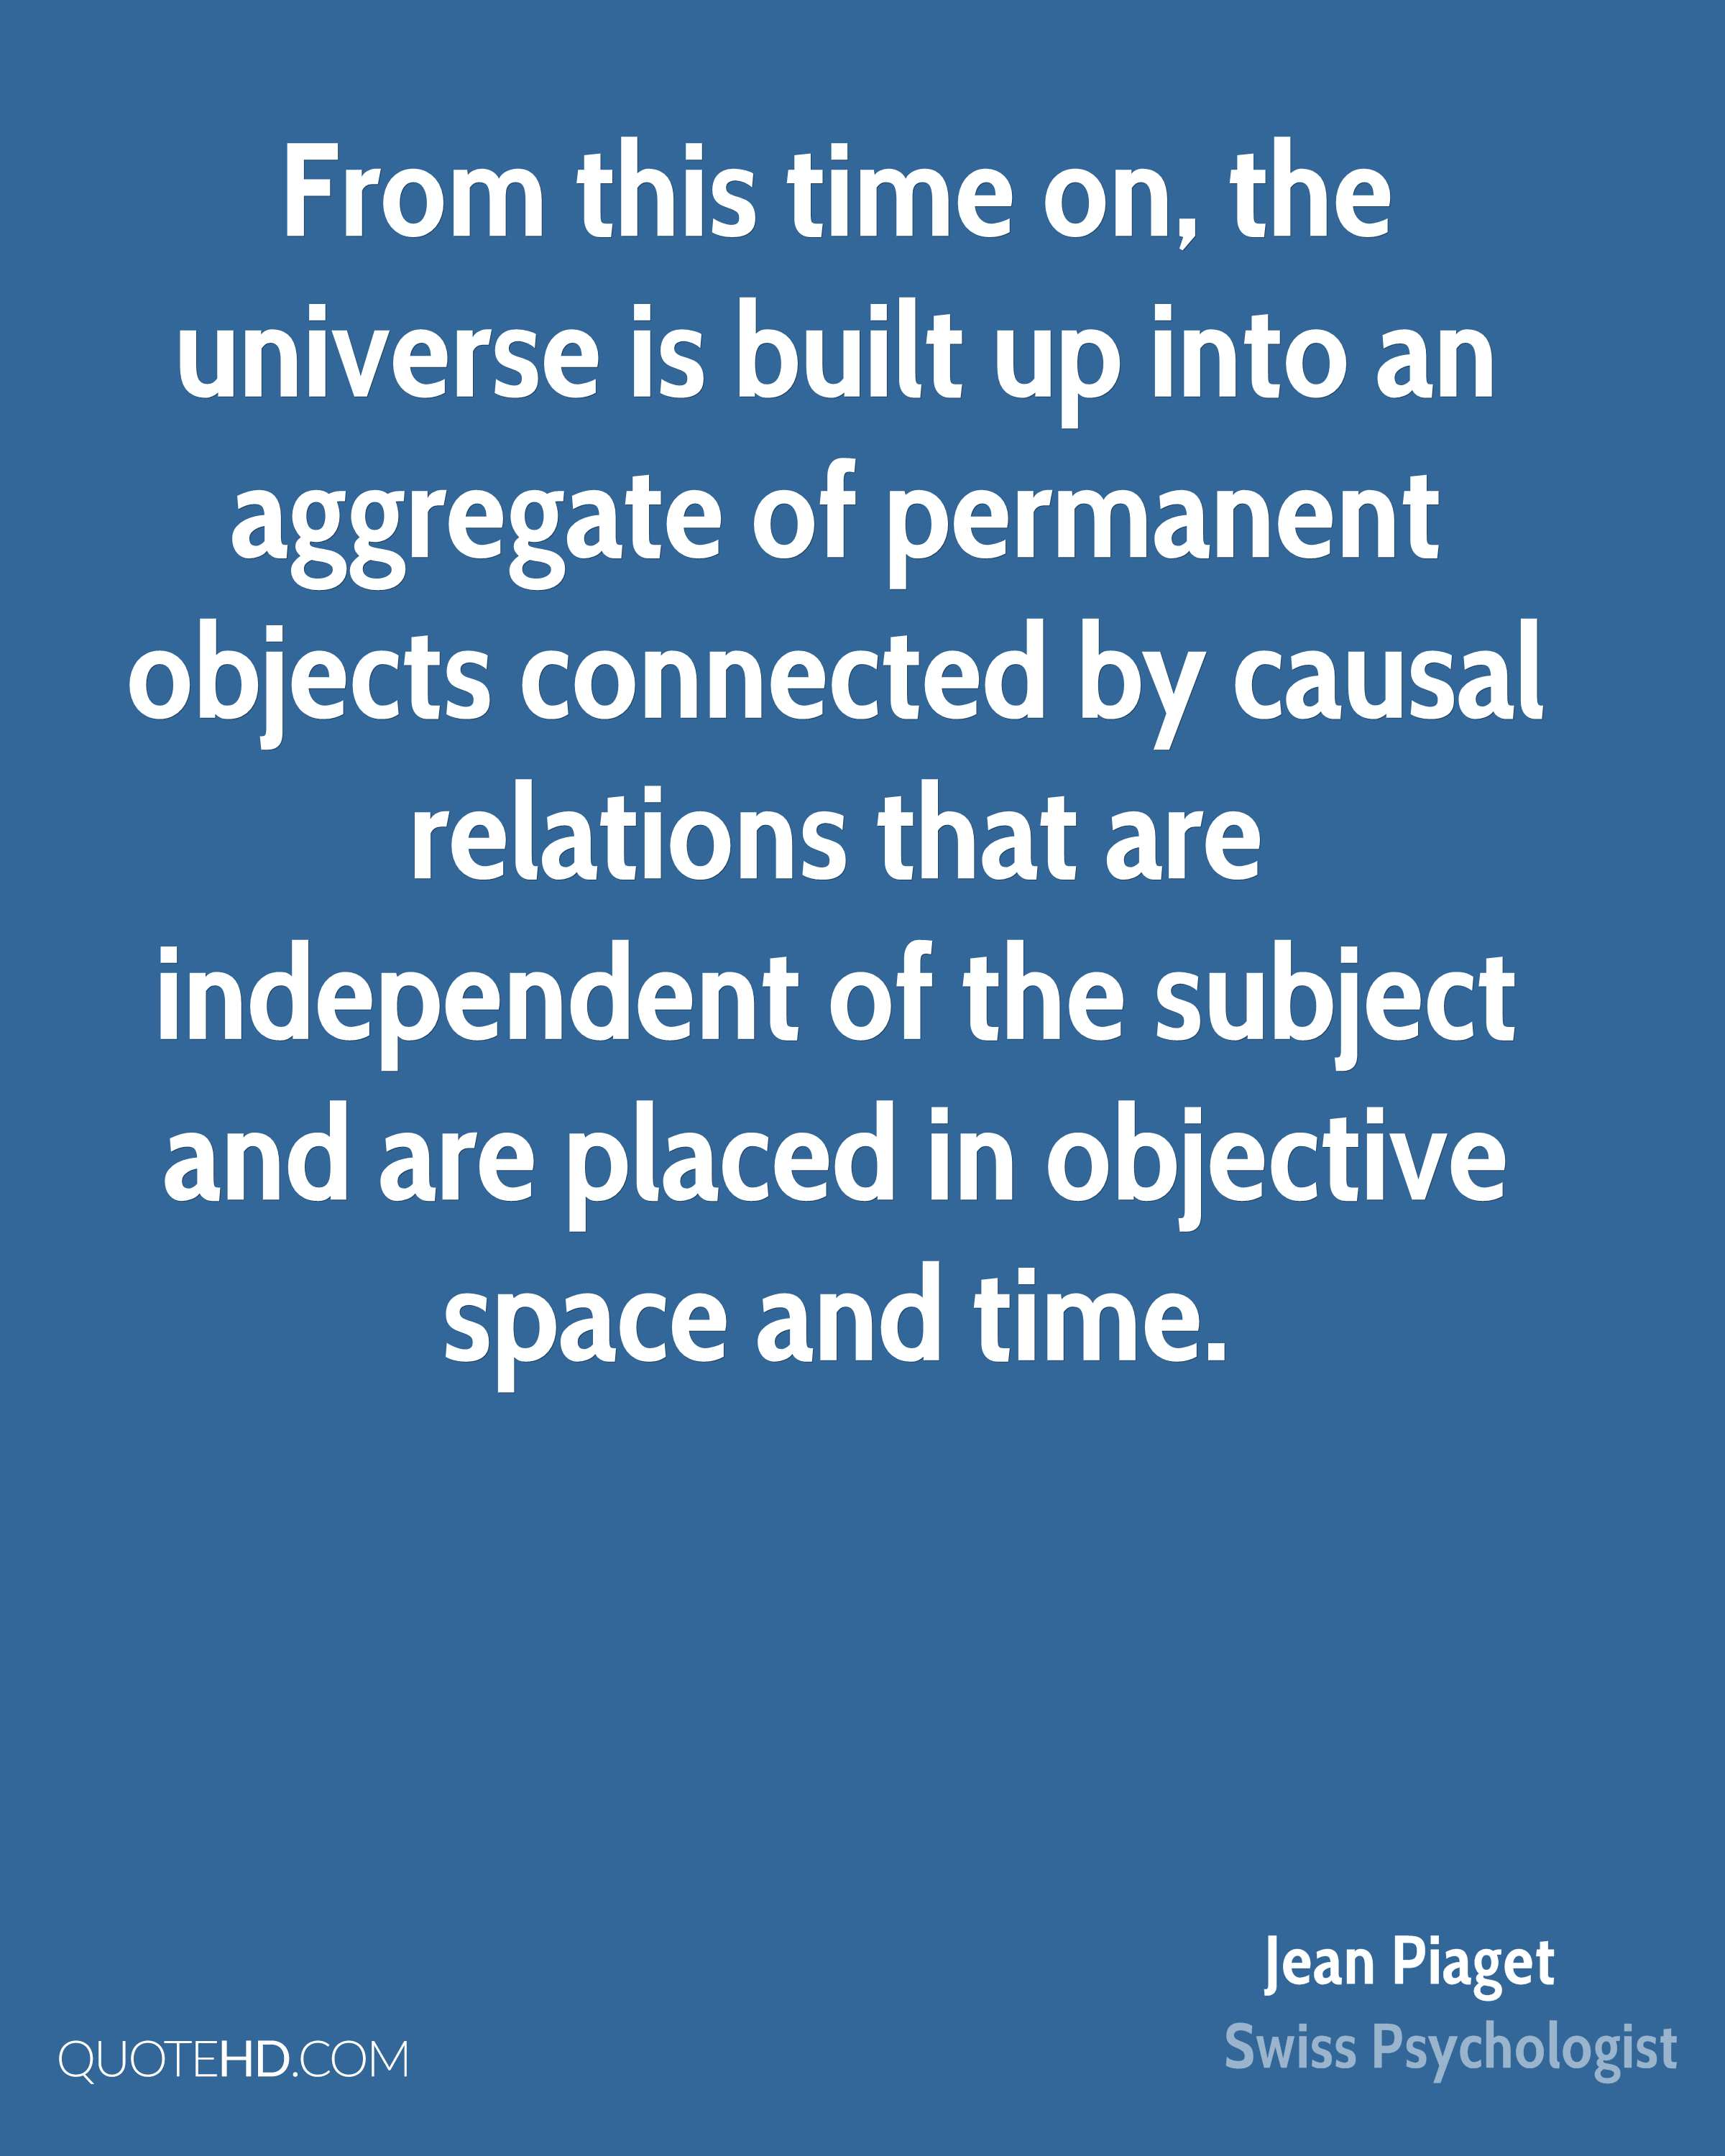 From this time on, the universe is built up into an aggregate of permanent objects connected by causal relations that are independent of the subject and are placed in objective space and time.